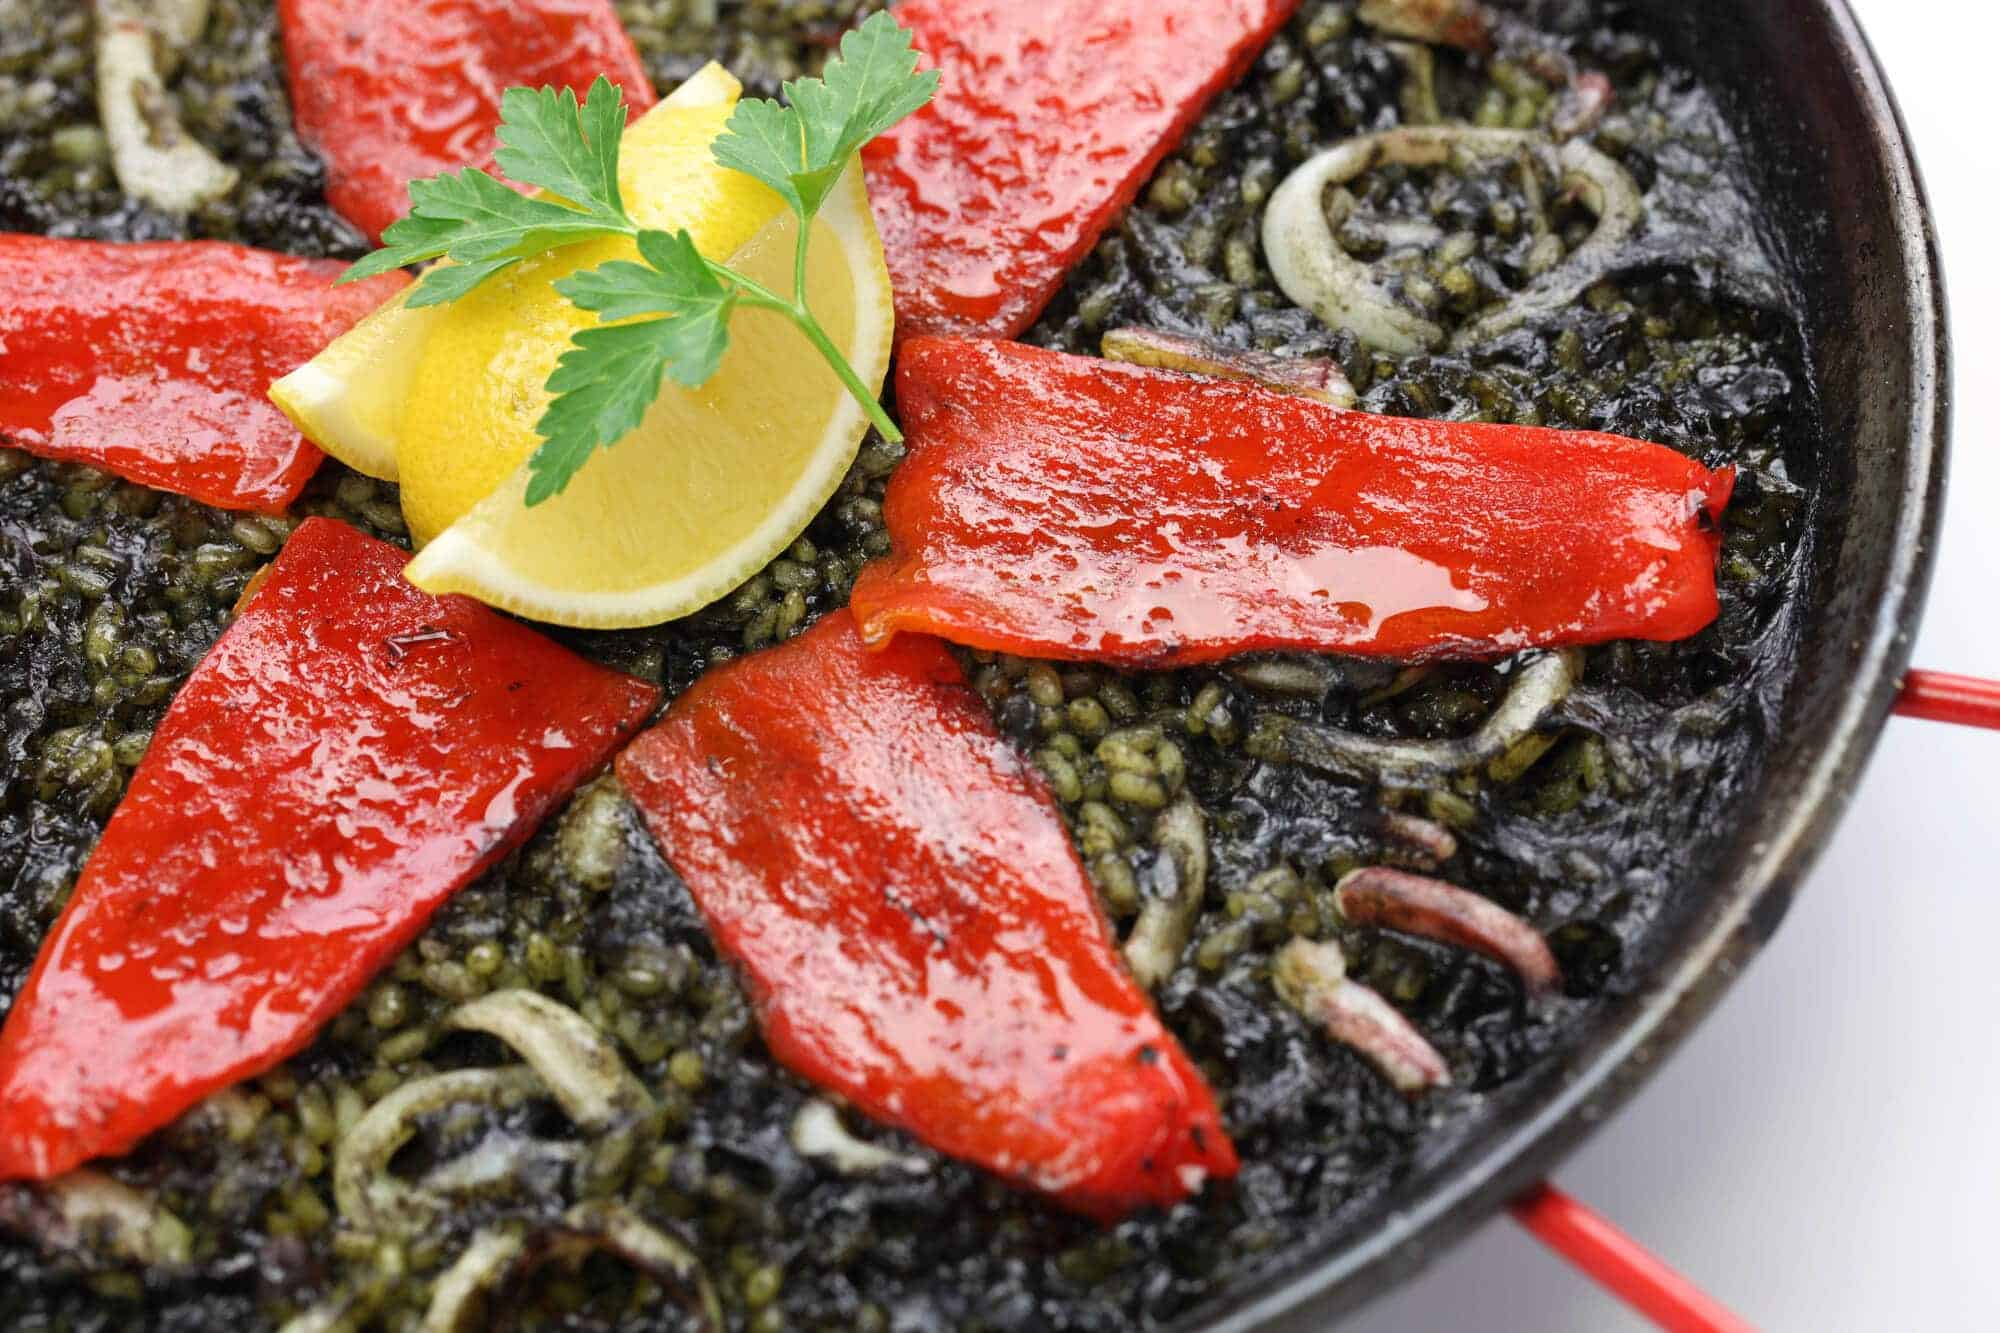 squid ink paella black rice arroz negro arros negre spanish recipe puerto rican cuban